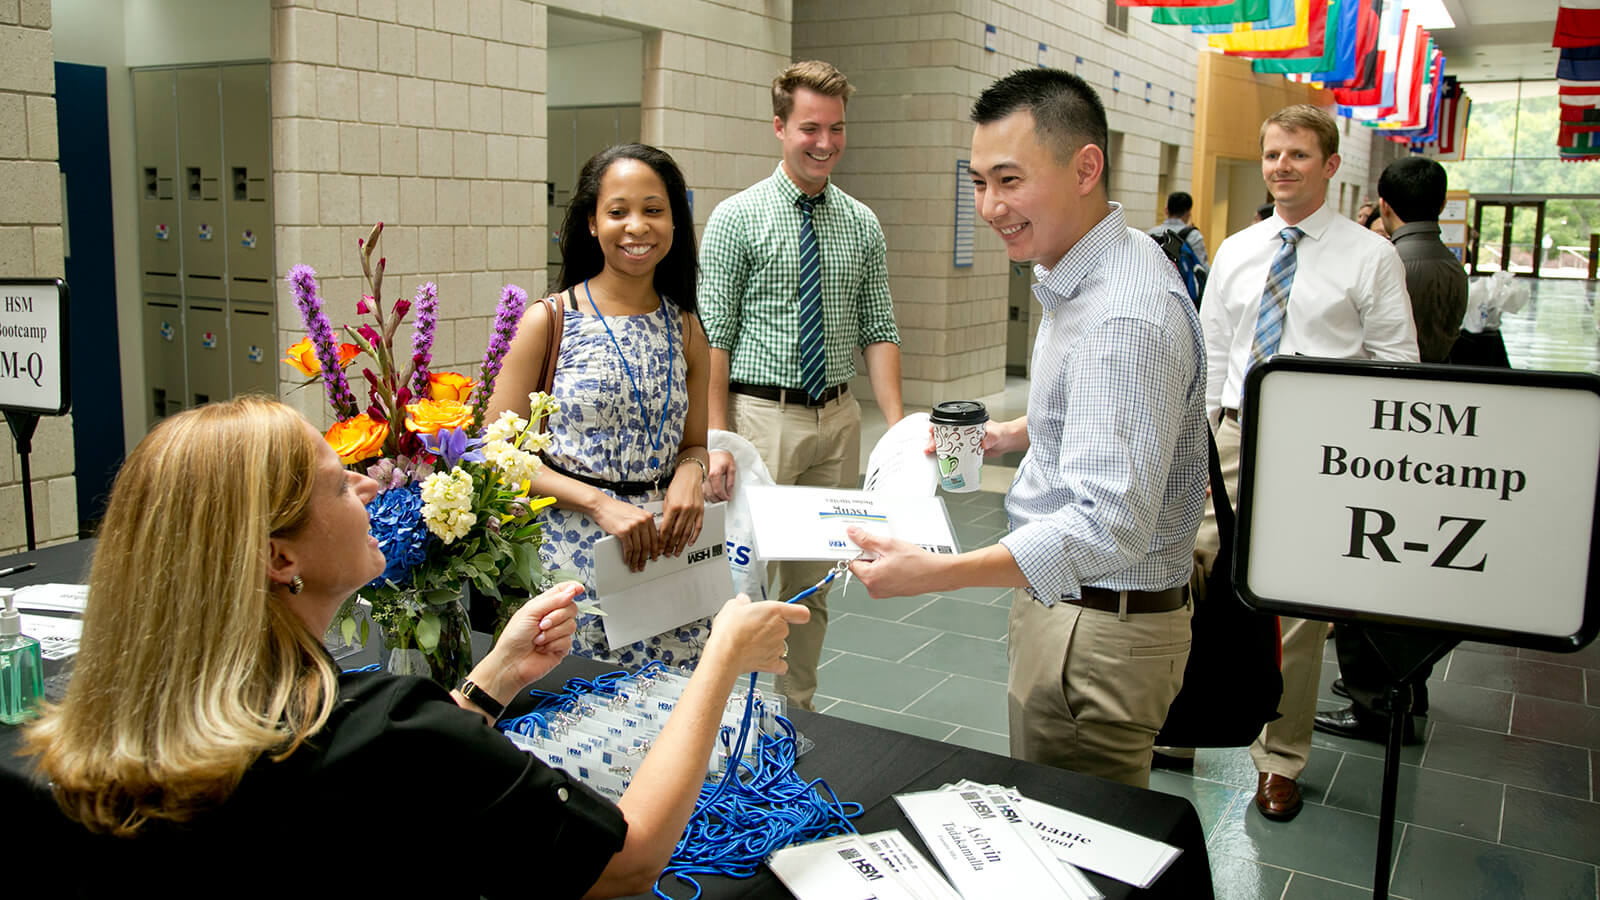 Students register for HSM Bootcamp, a health care management course taught to Duke MBA students at Fuqua